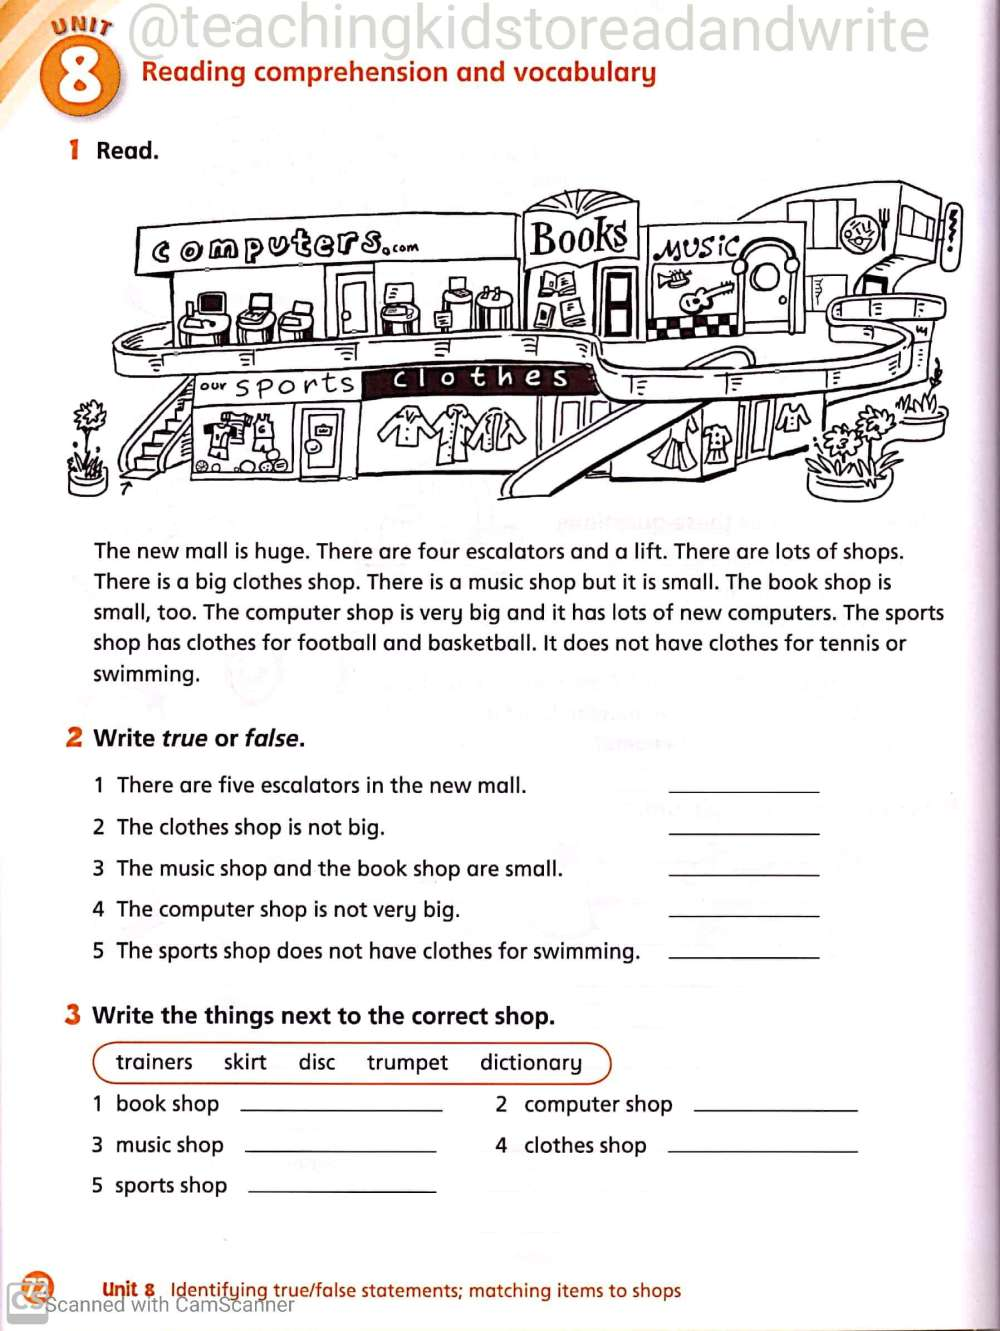 medium resolution of English Worksheets for Grade 3 – Teaching Kids to Read and Write